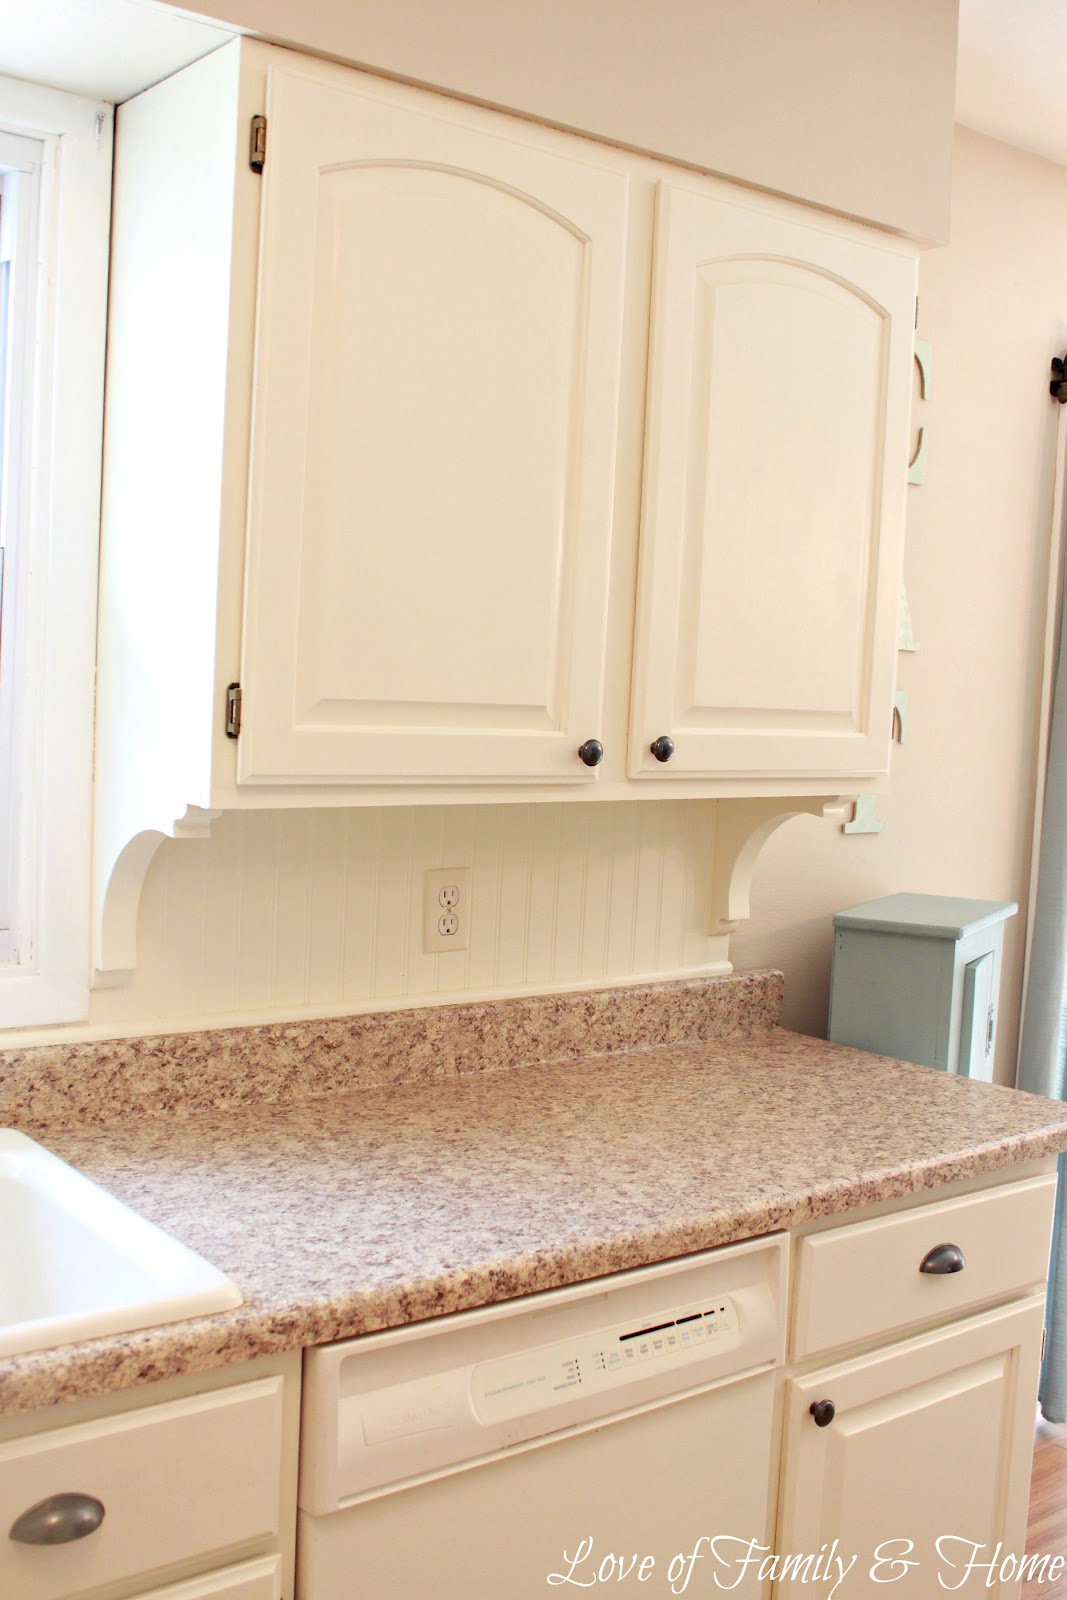 Beadboard Backsplash, Corbel Love, & A Few Other Kitchen Updates ...